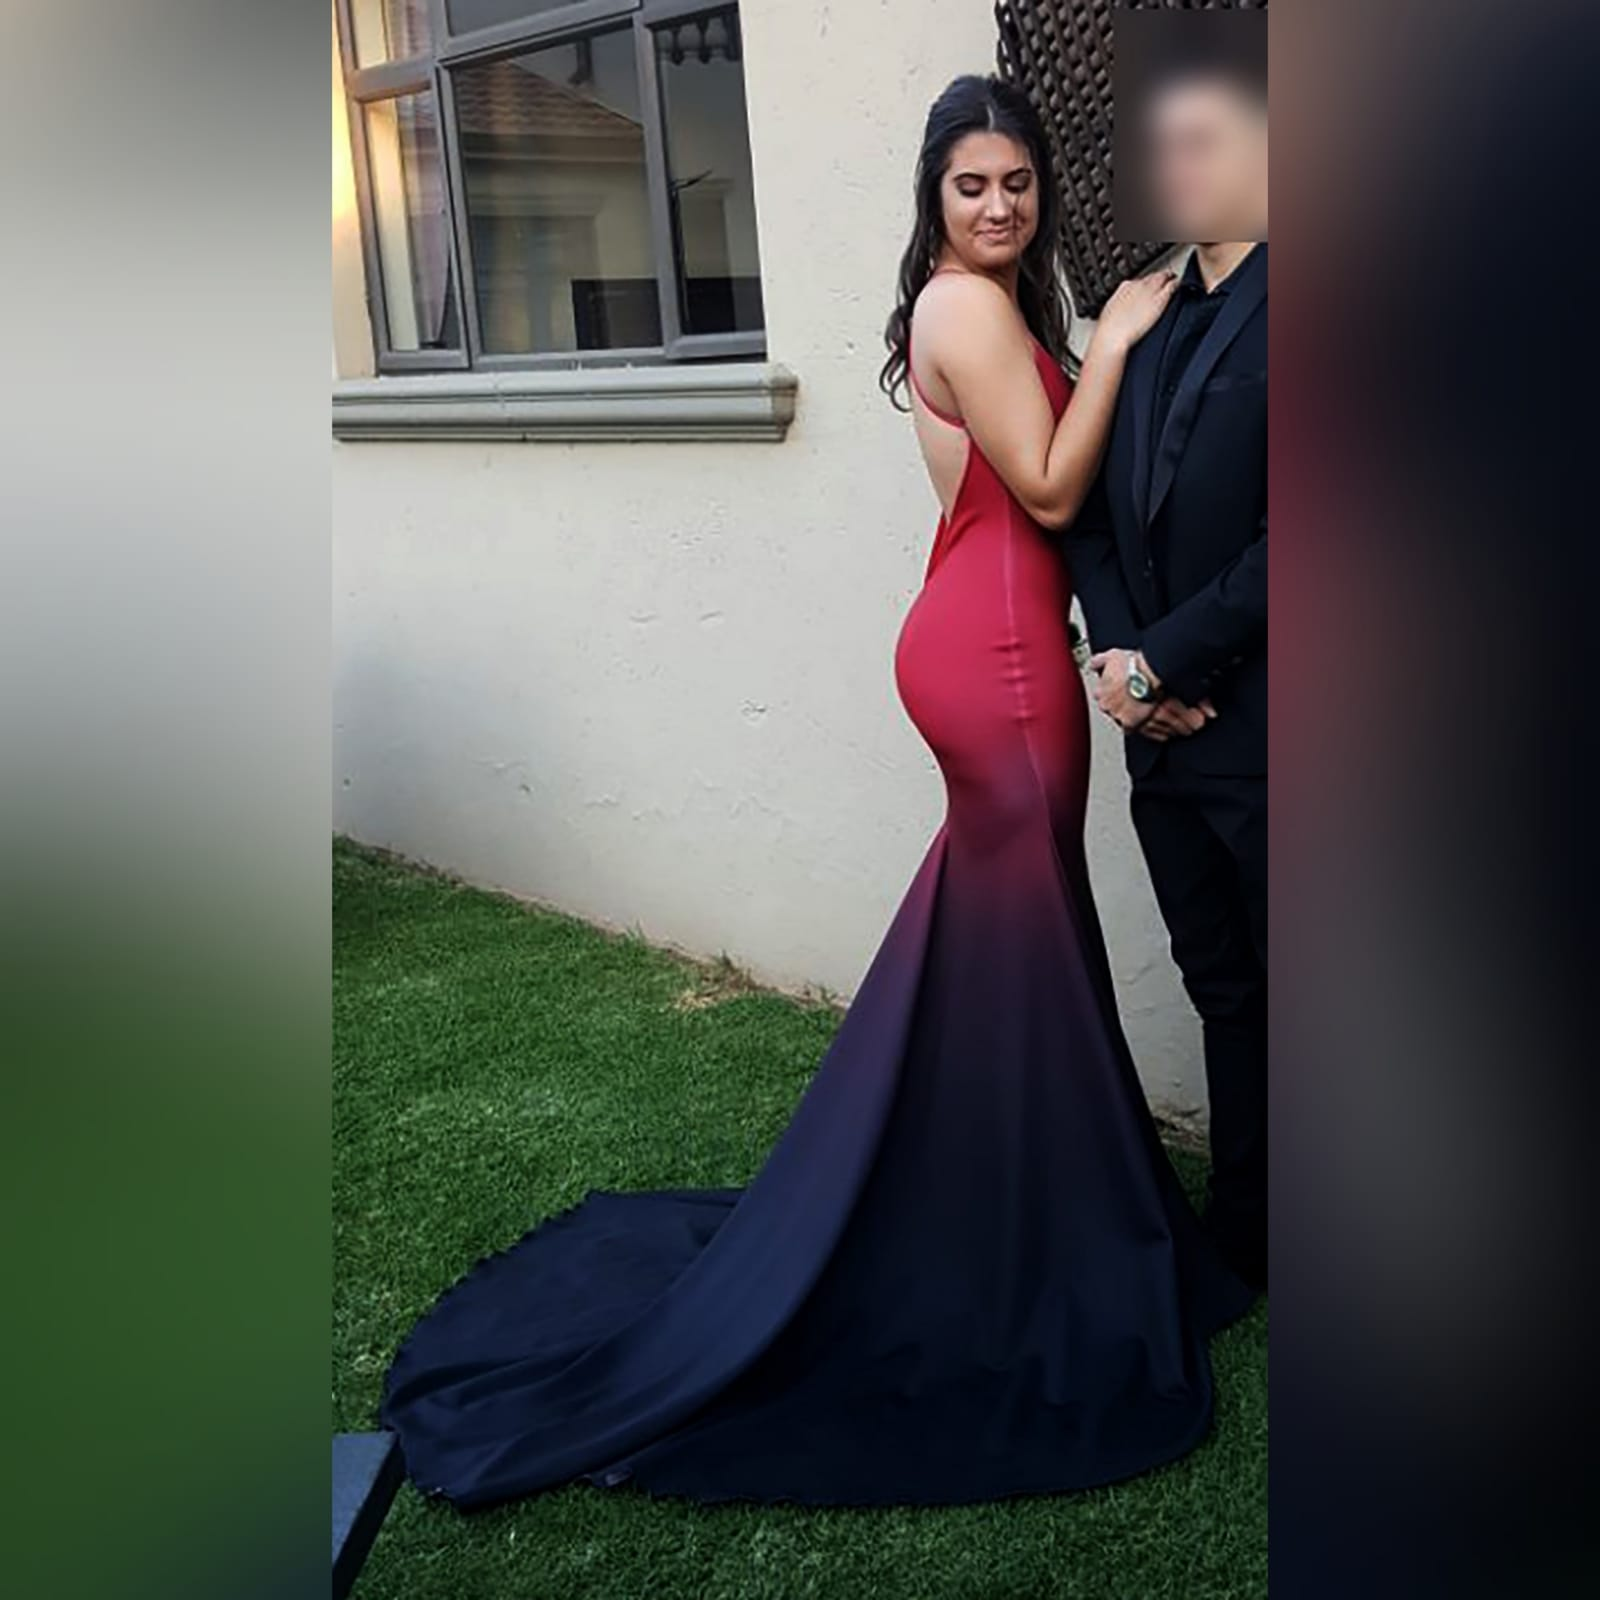 Red black ombre mermaid prom dress 1 red and black ombre mermaid sexy prom dress. With a v neckline, low open back with crossed shoulder straps and long train.